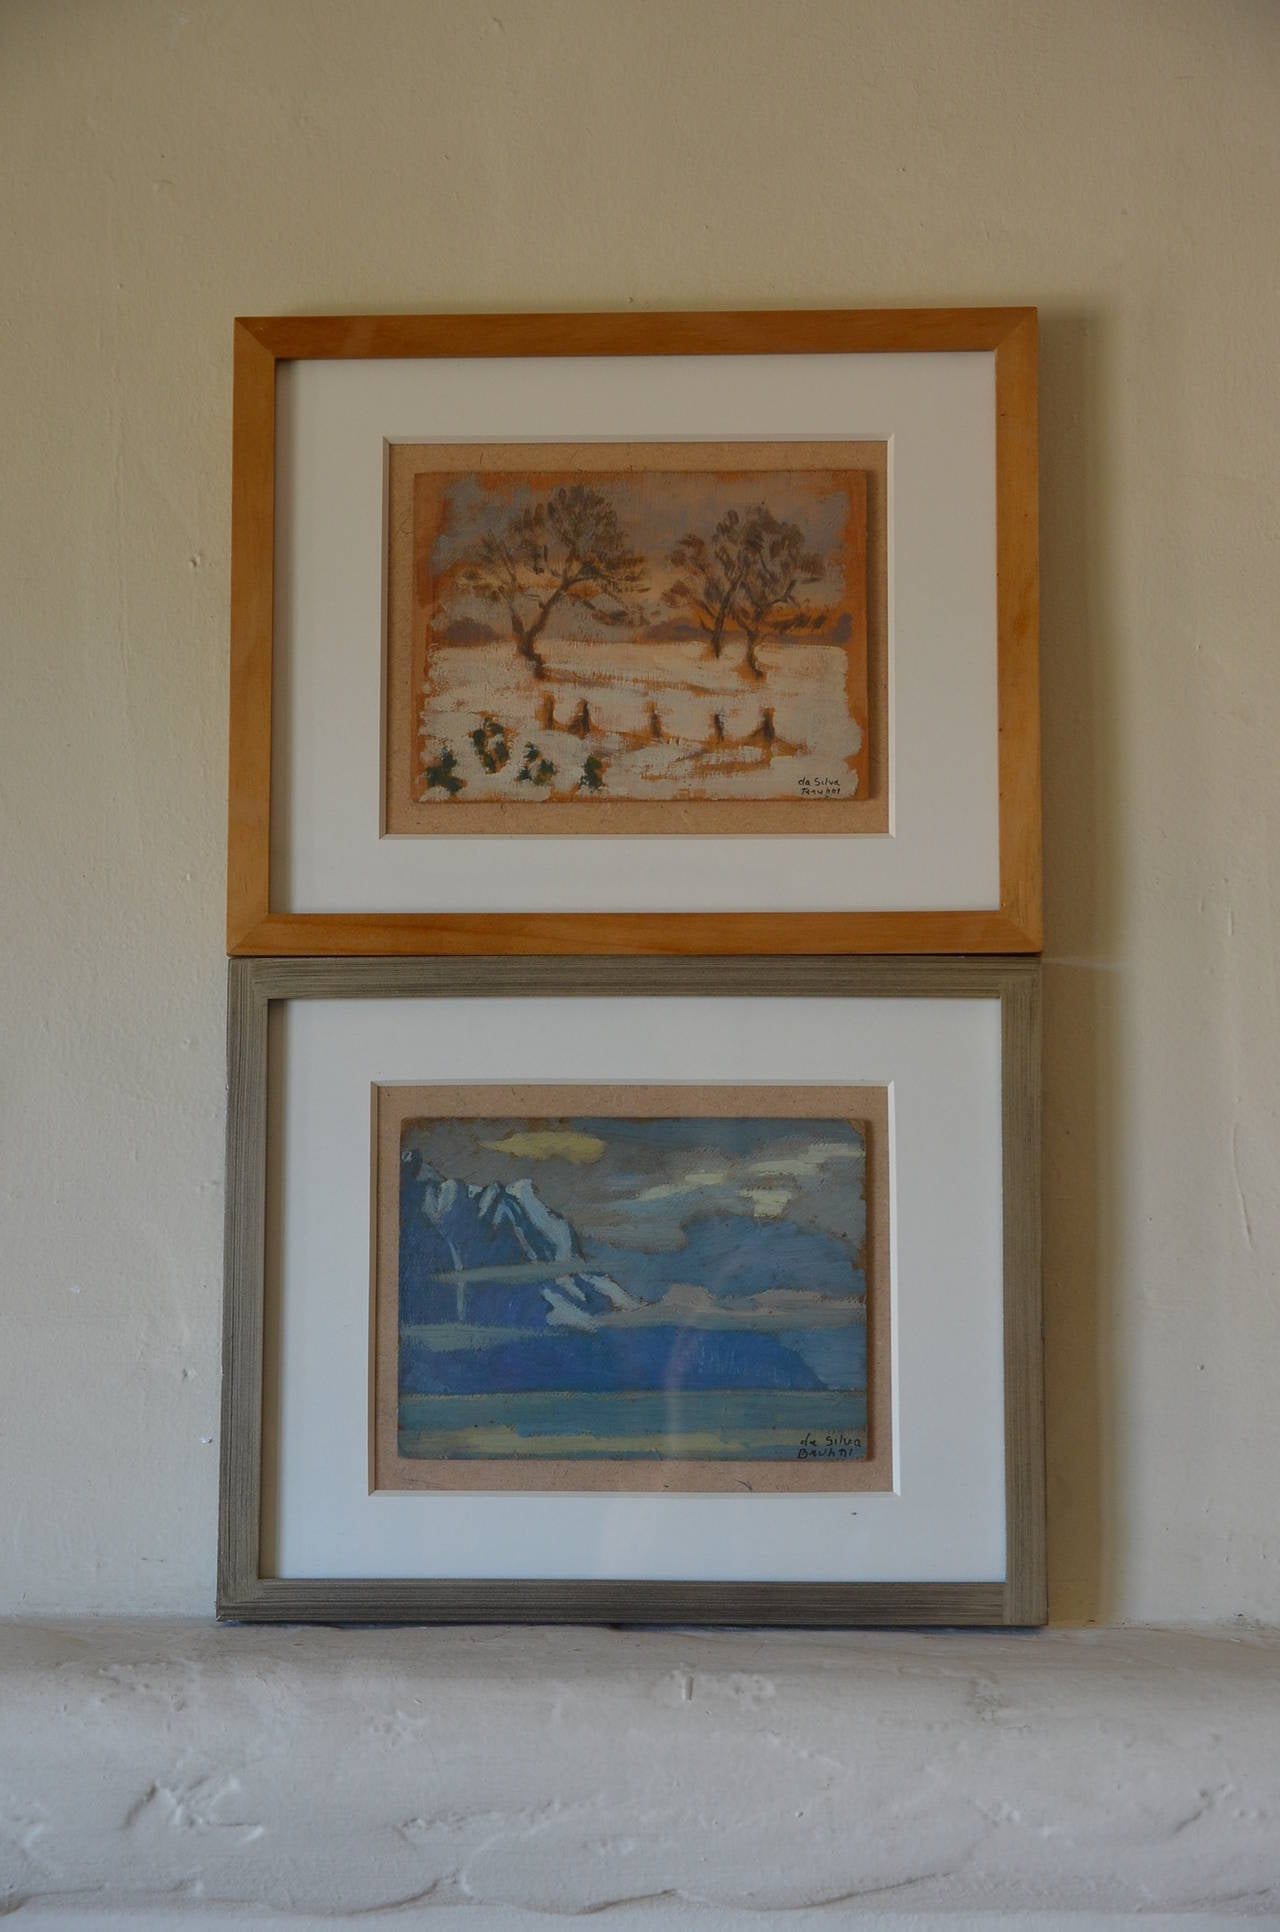 Rare set of two small framed oil paintings by Ivan da Silva Bruhns, (Paris, 1881-Antibes, 1980). Unique works. Signed. Each panel is 9 in. Wide x 6.5 in. tall.